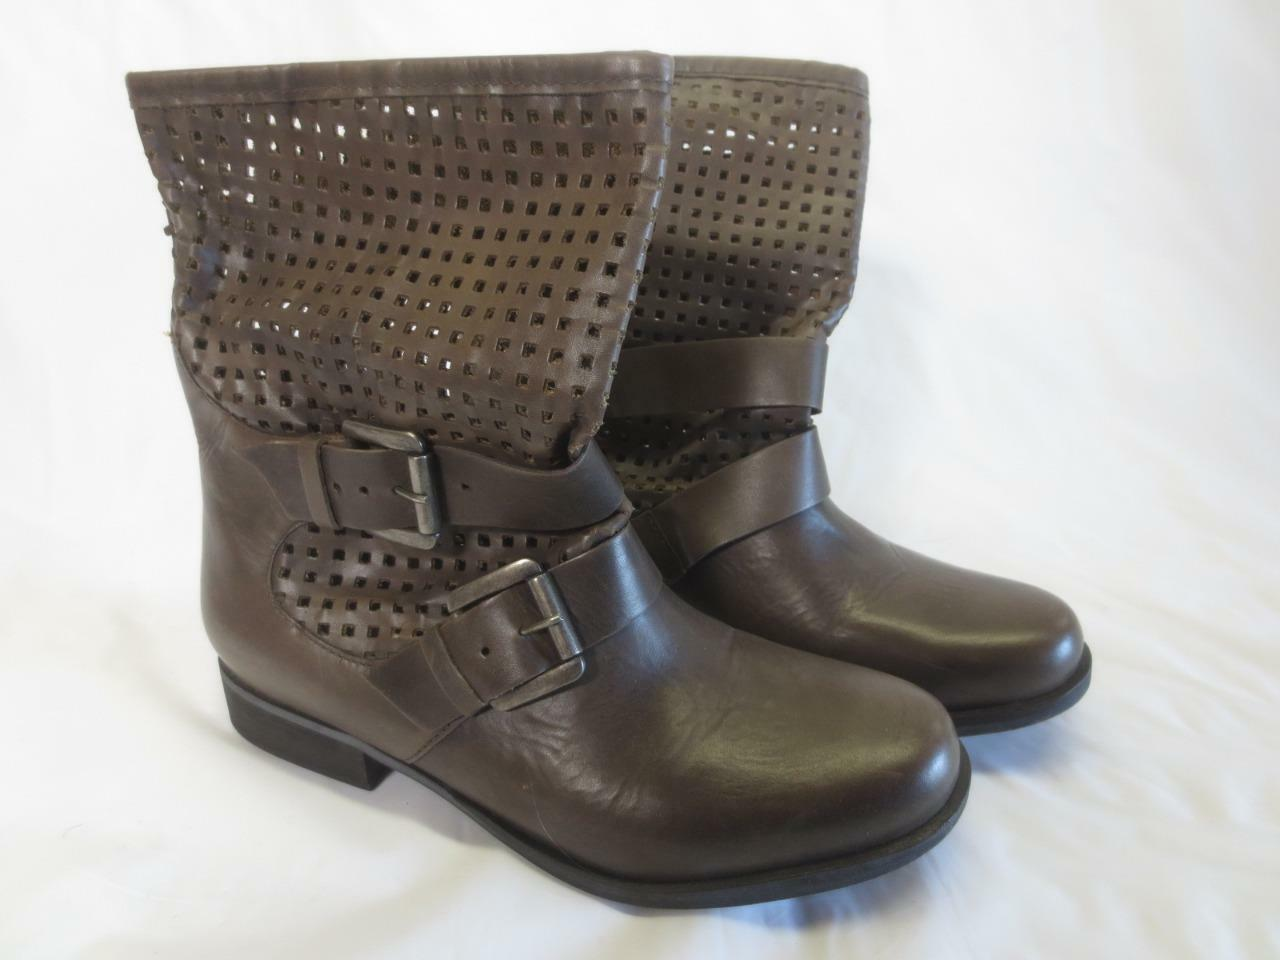 Steve Madden Brown Leather Womens Ankle Boots Size 7.5 M